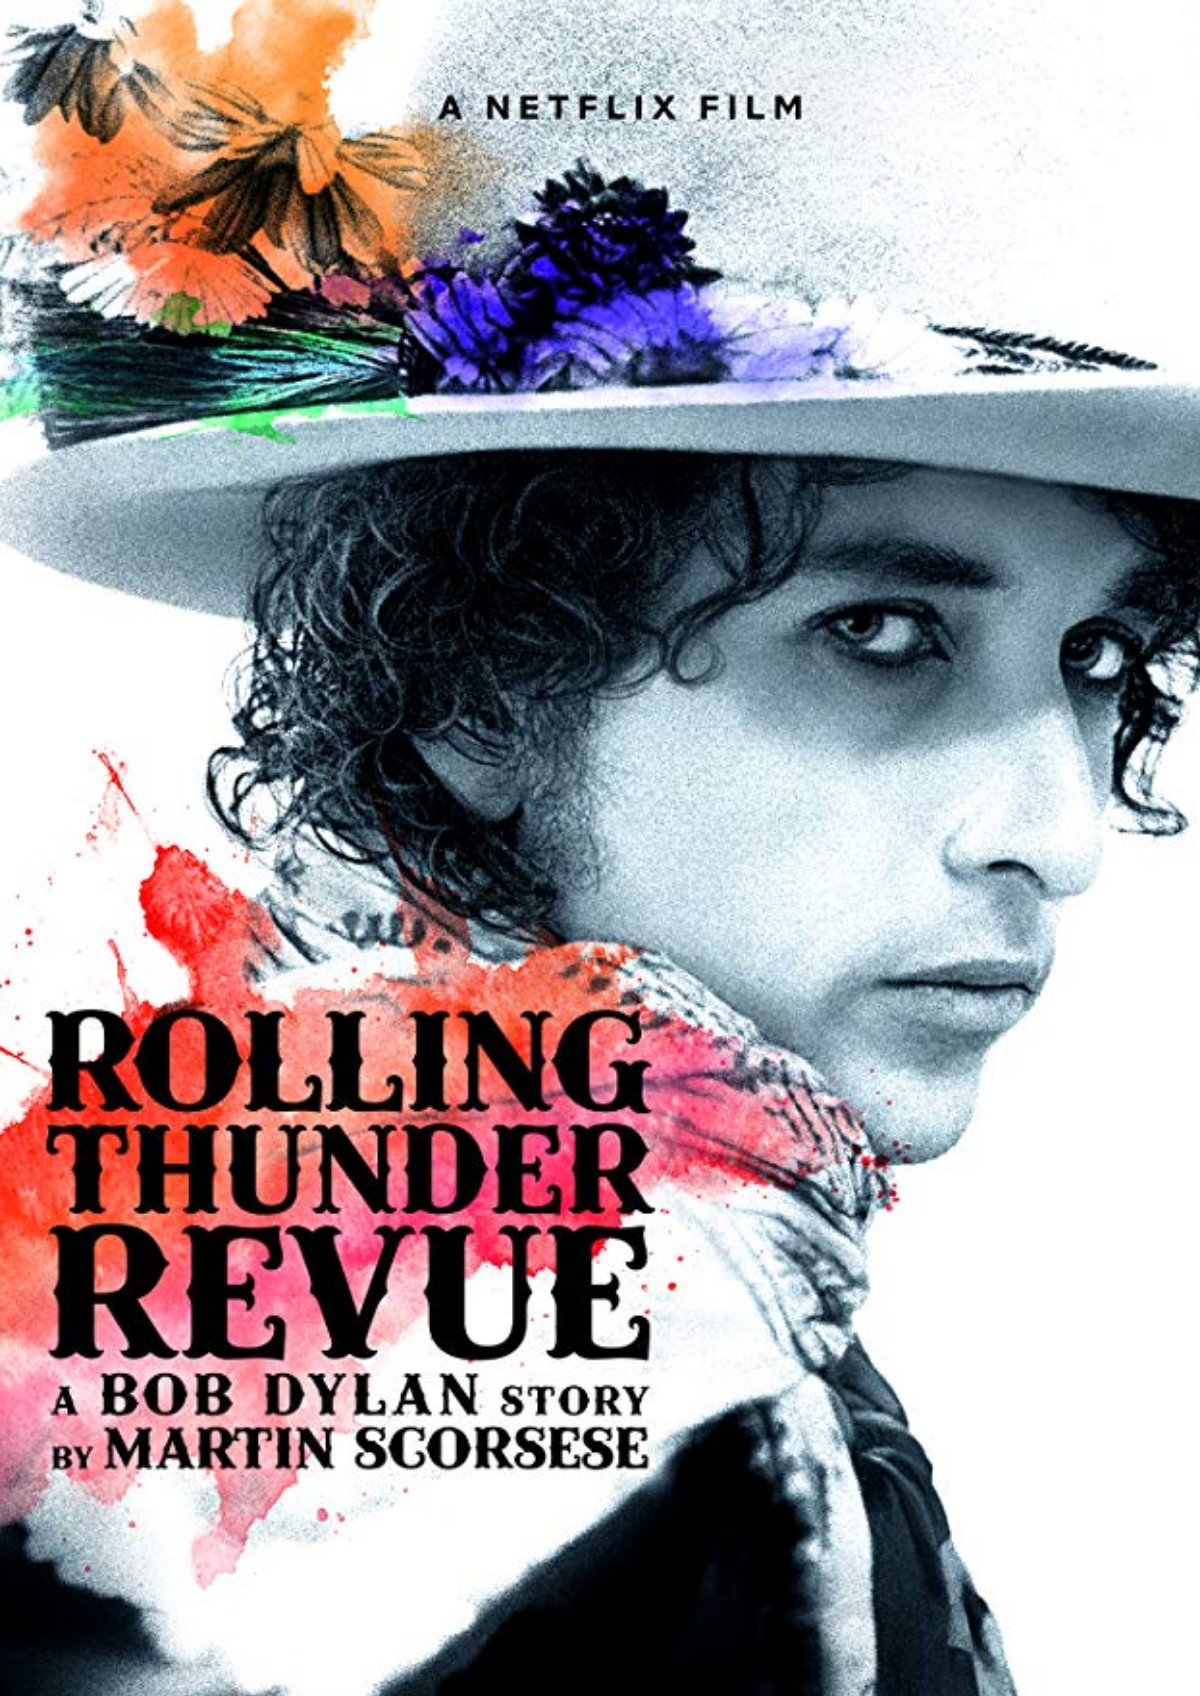 'Rolling Thunder Revue: A Bob Dylan Story By Martin Scorsese' movie poster